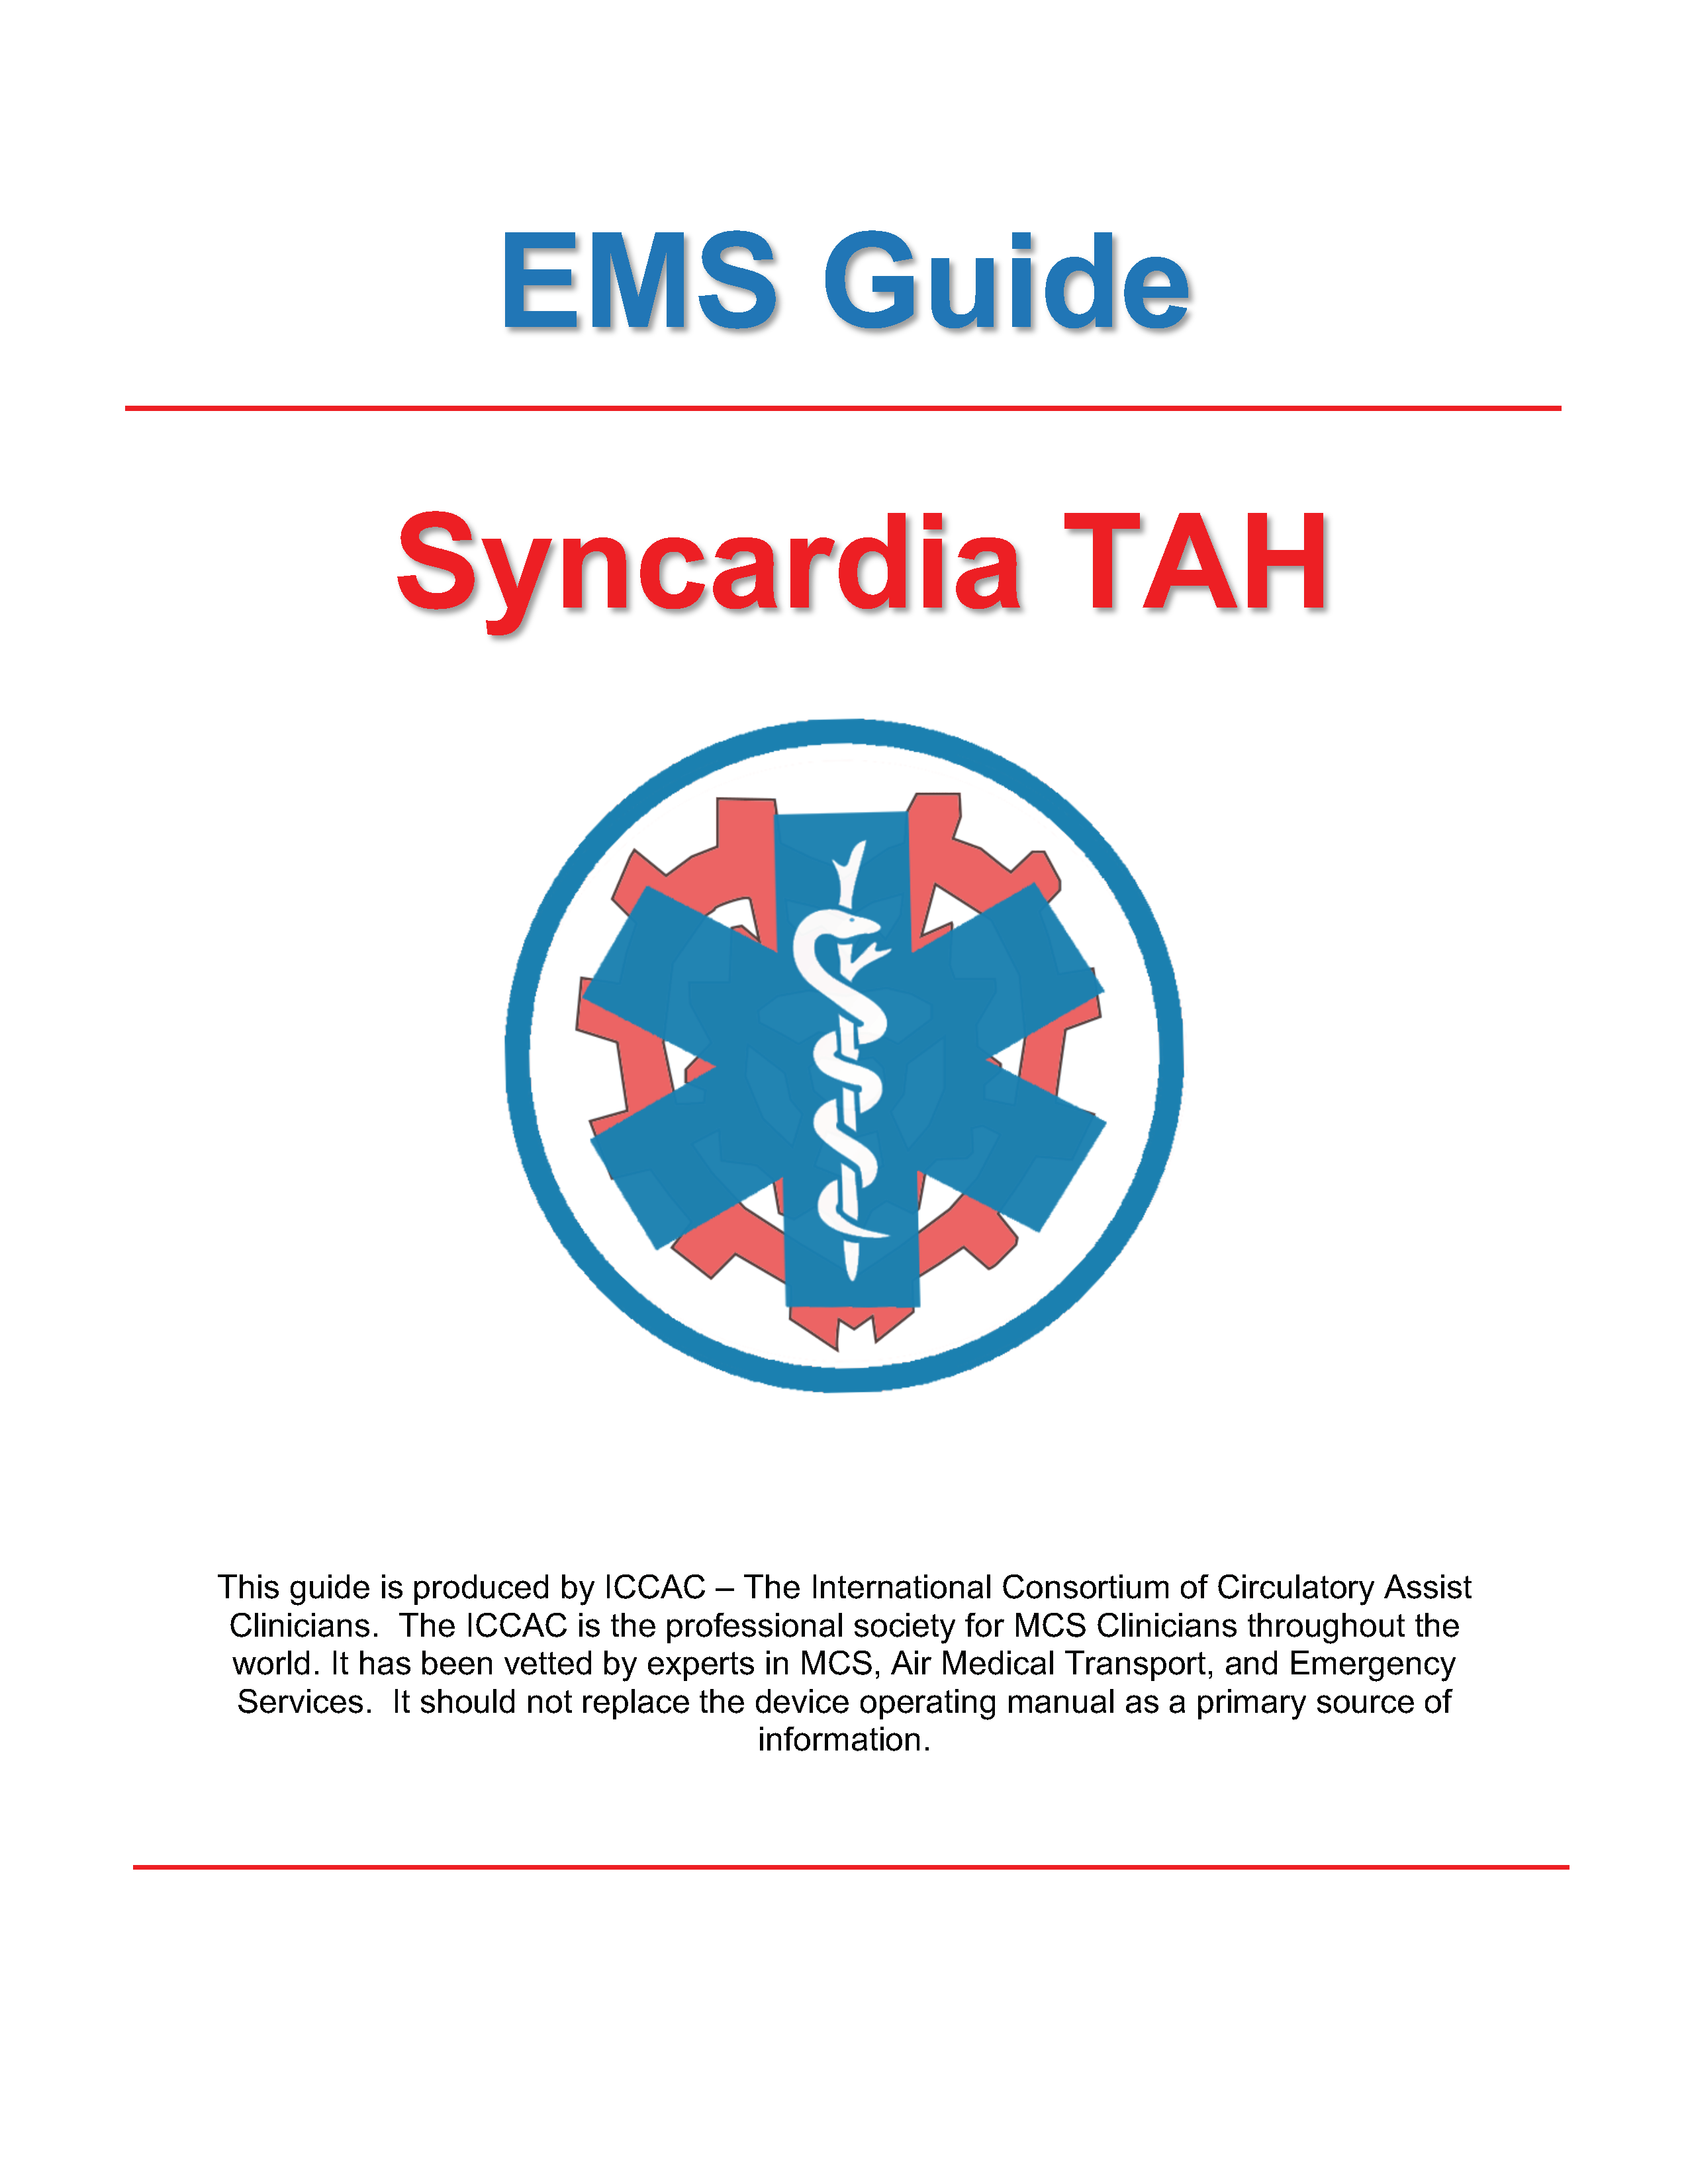 Syncardia EMS cover.png